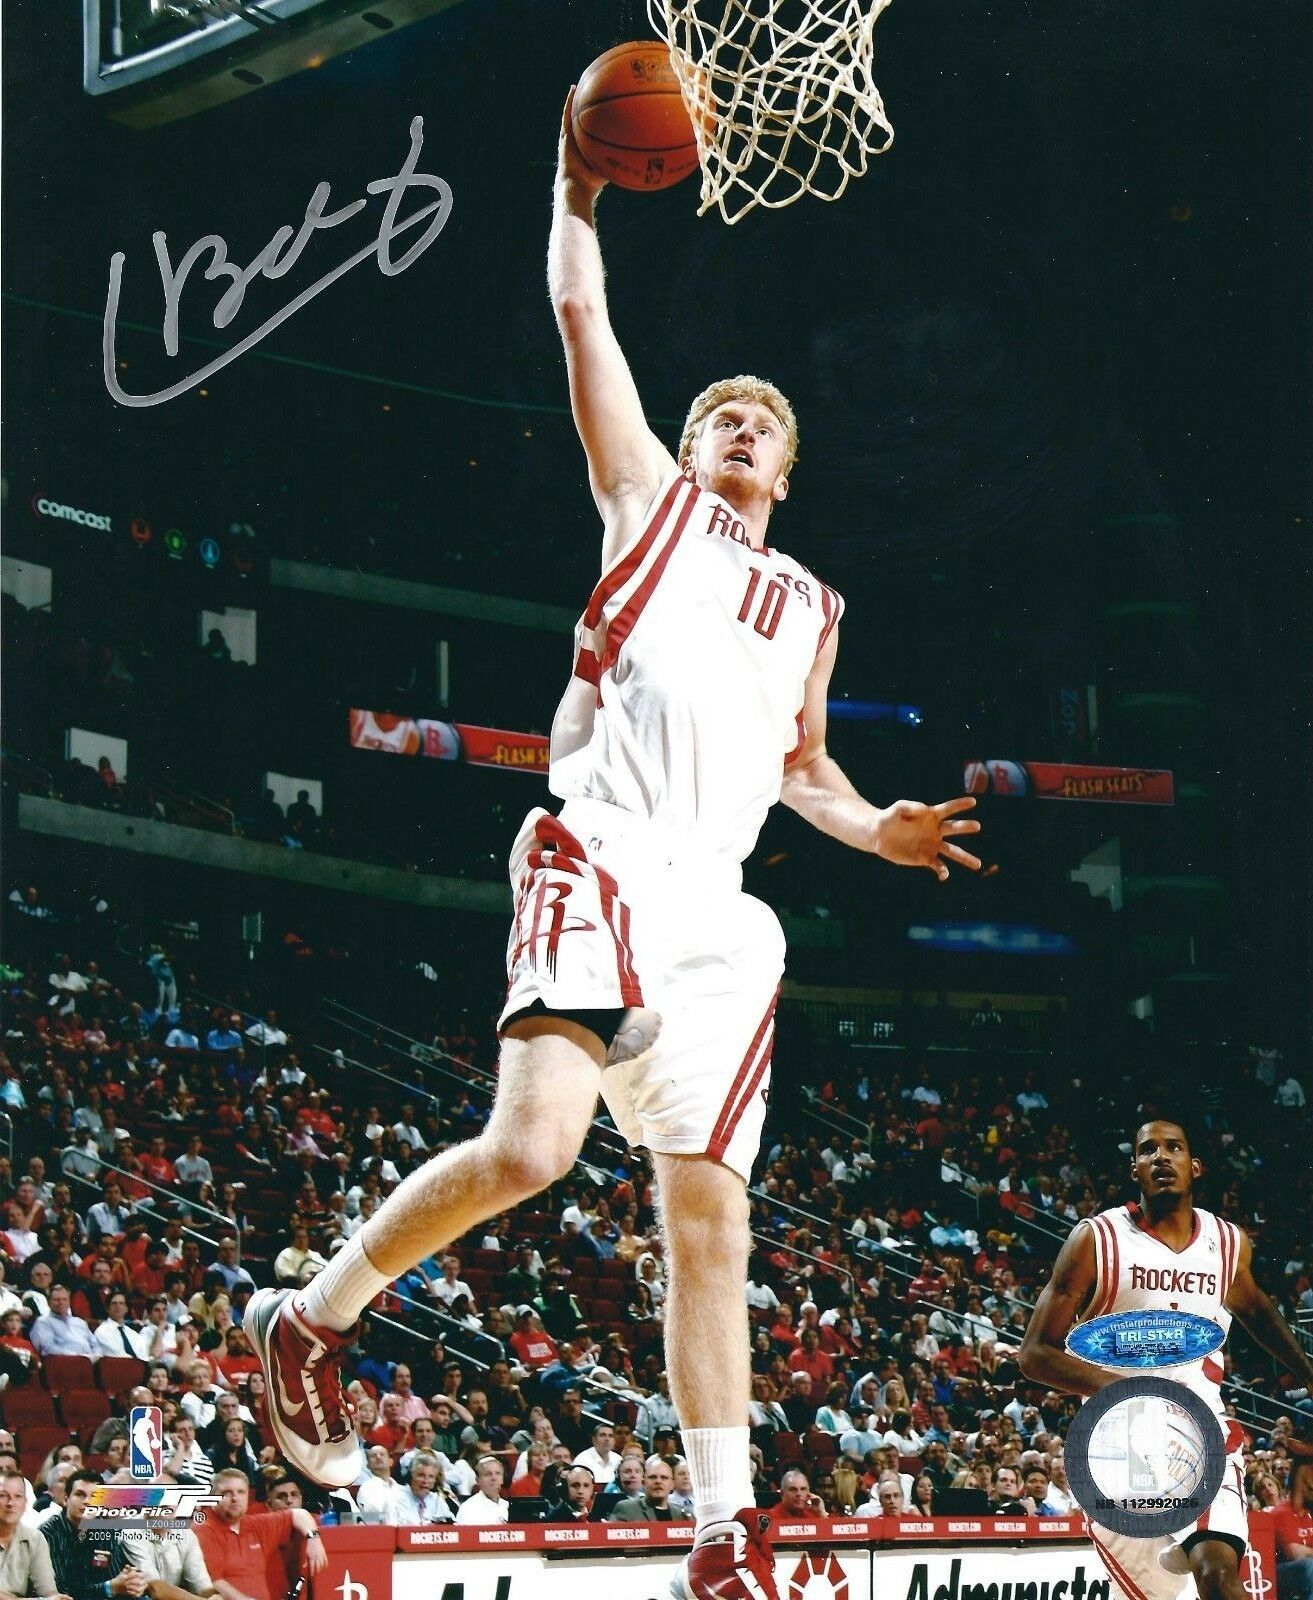 Chase Budinger Signed Houston Rockets Basketball 8x10 Photo Tri-Star 7032503